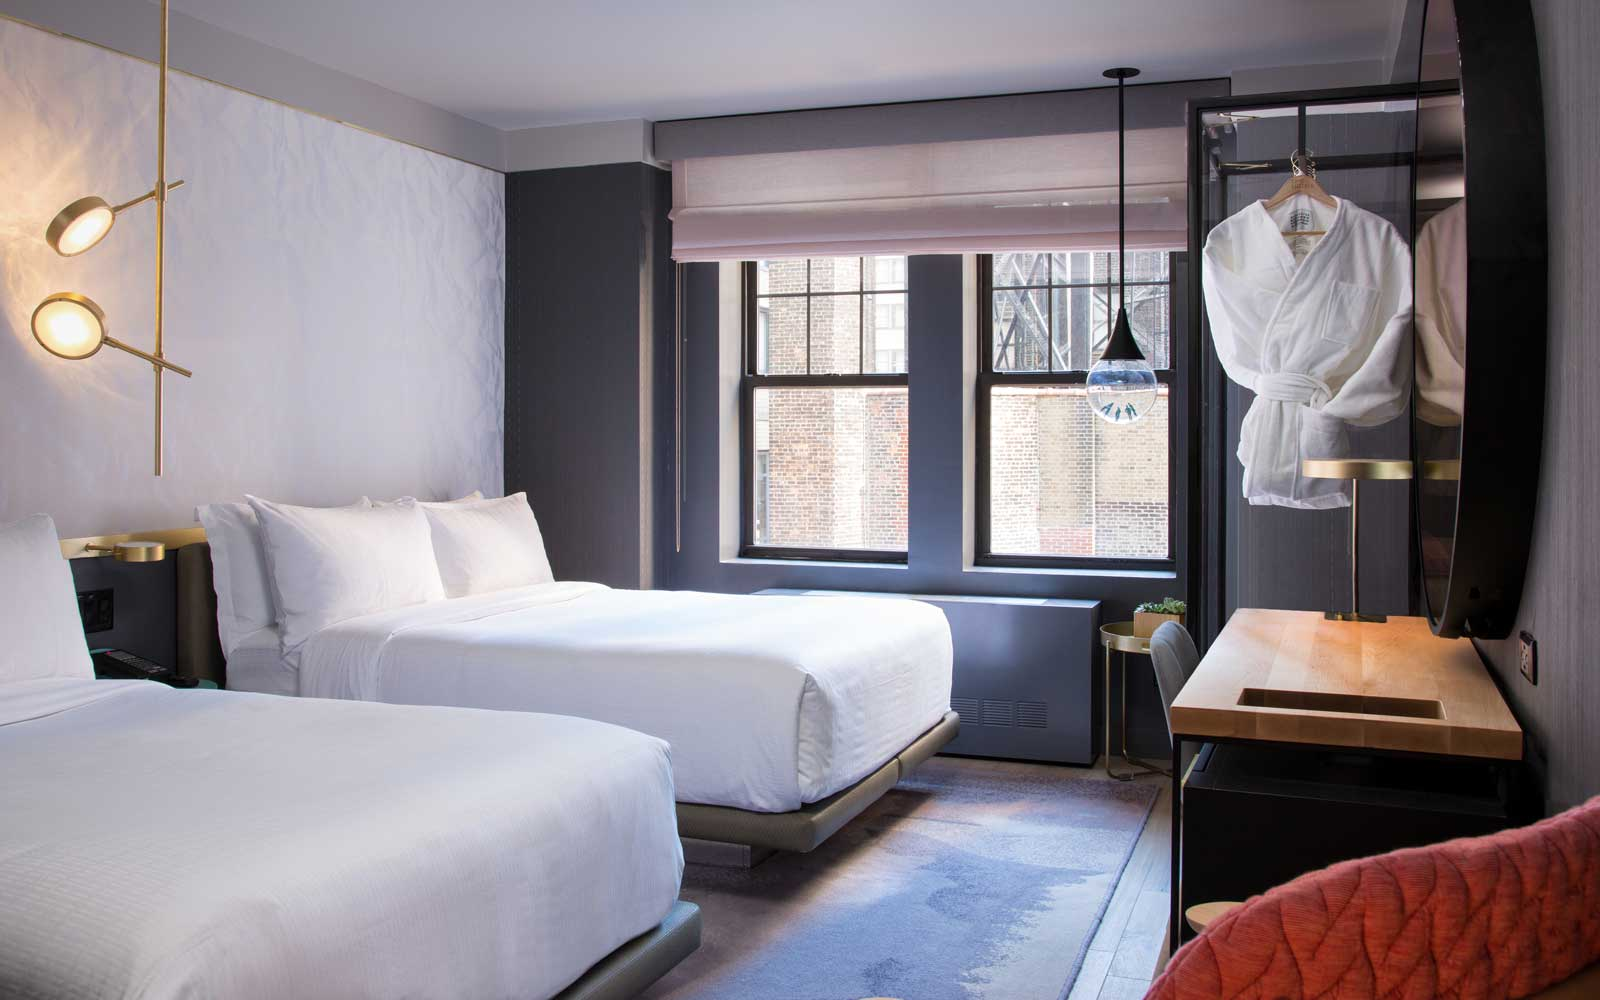 Save 30% off Stays at the Time Hotel, A Glamorous Sleep in New York's Theater District